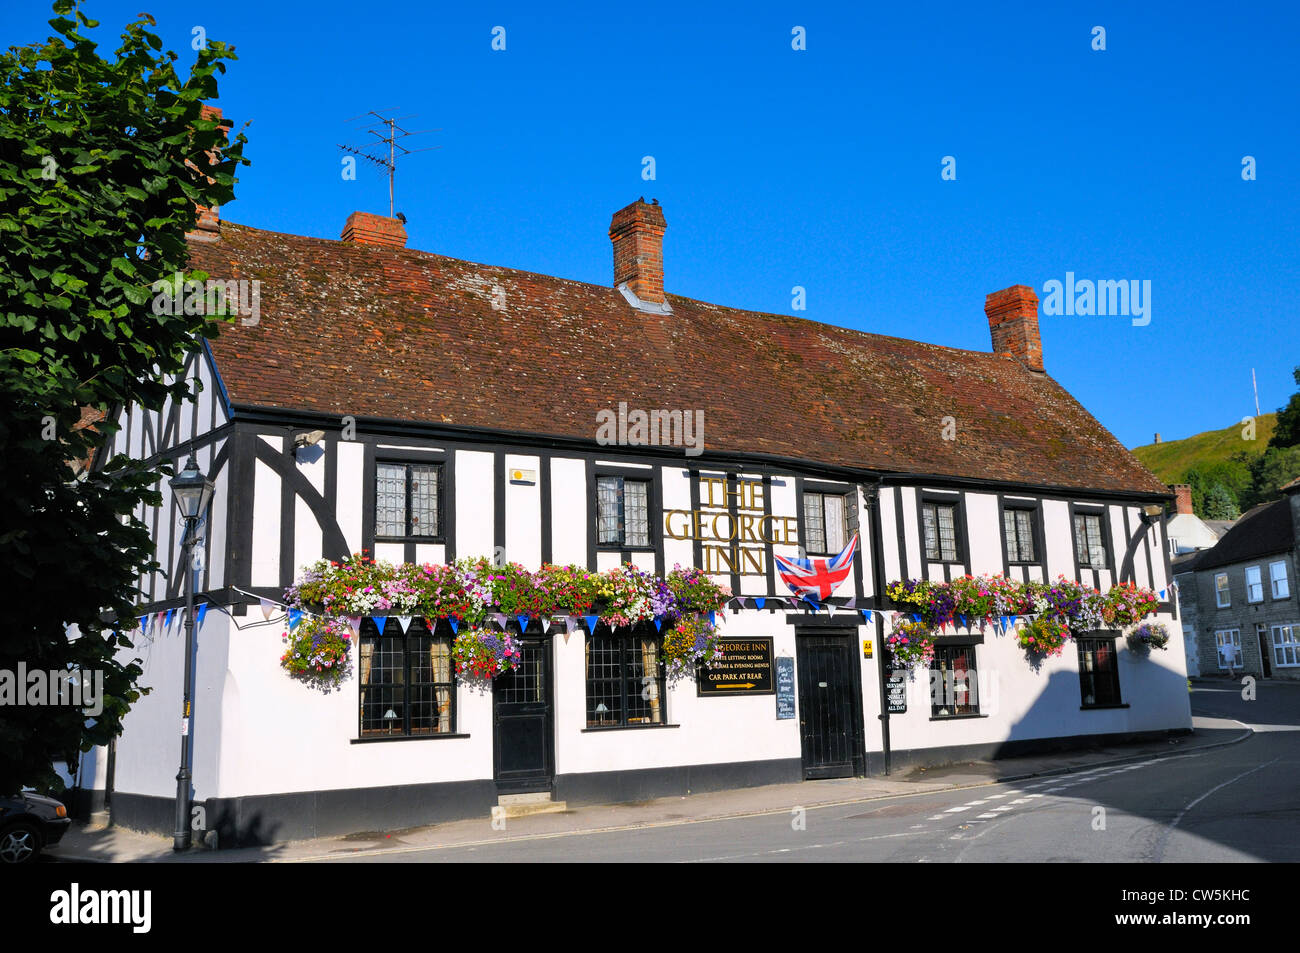 The George Inn, Mere, Wiltshire, England, UK - Stock Image